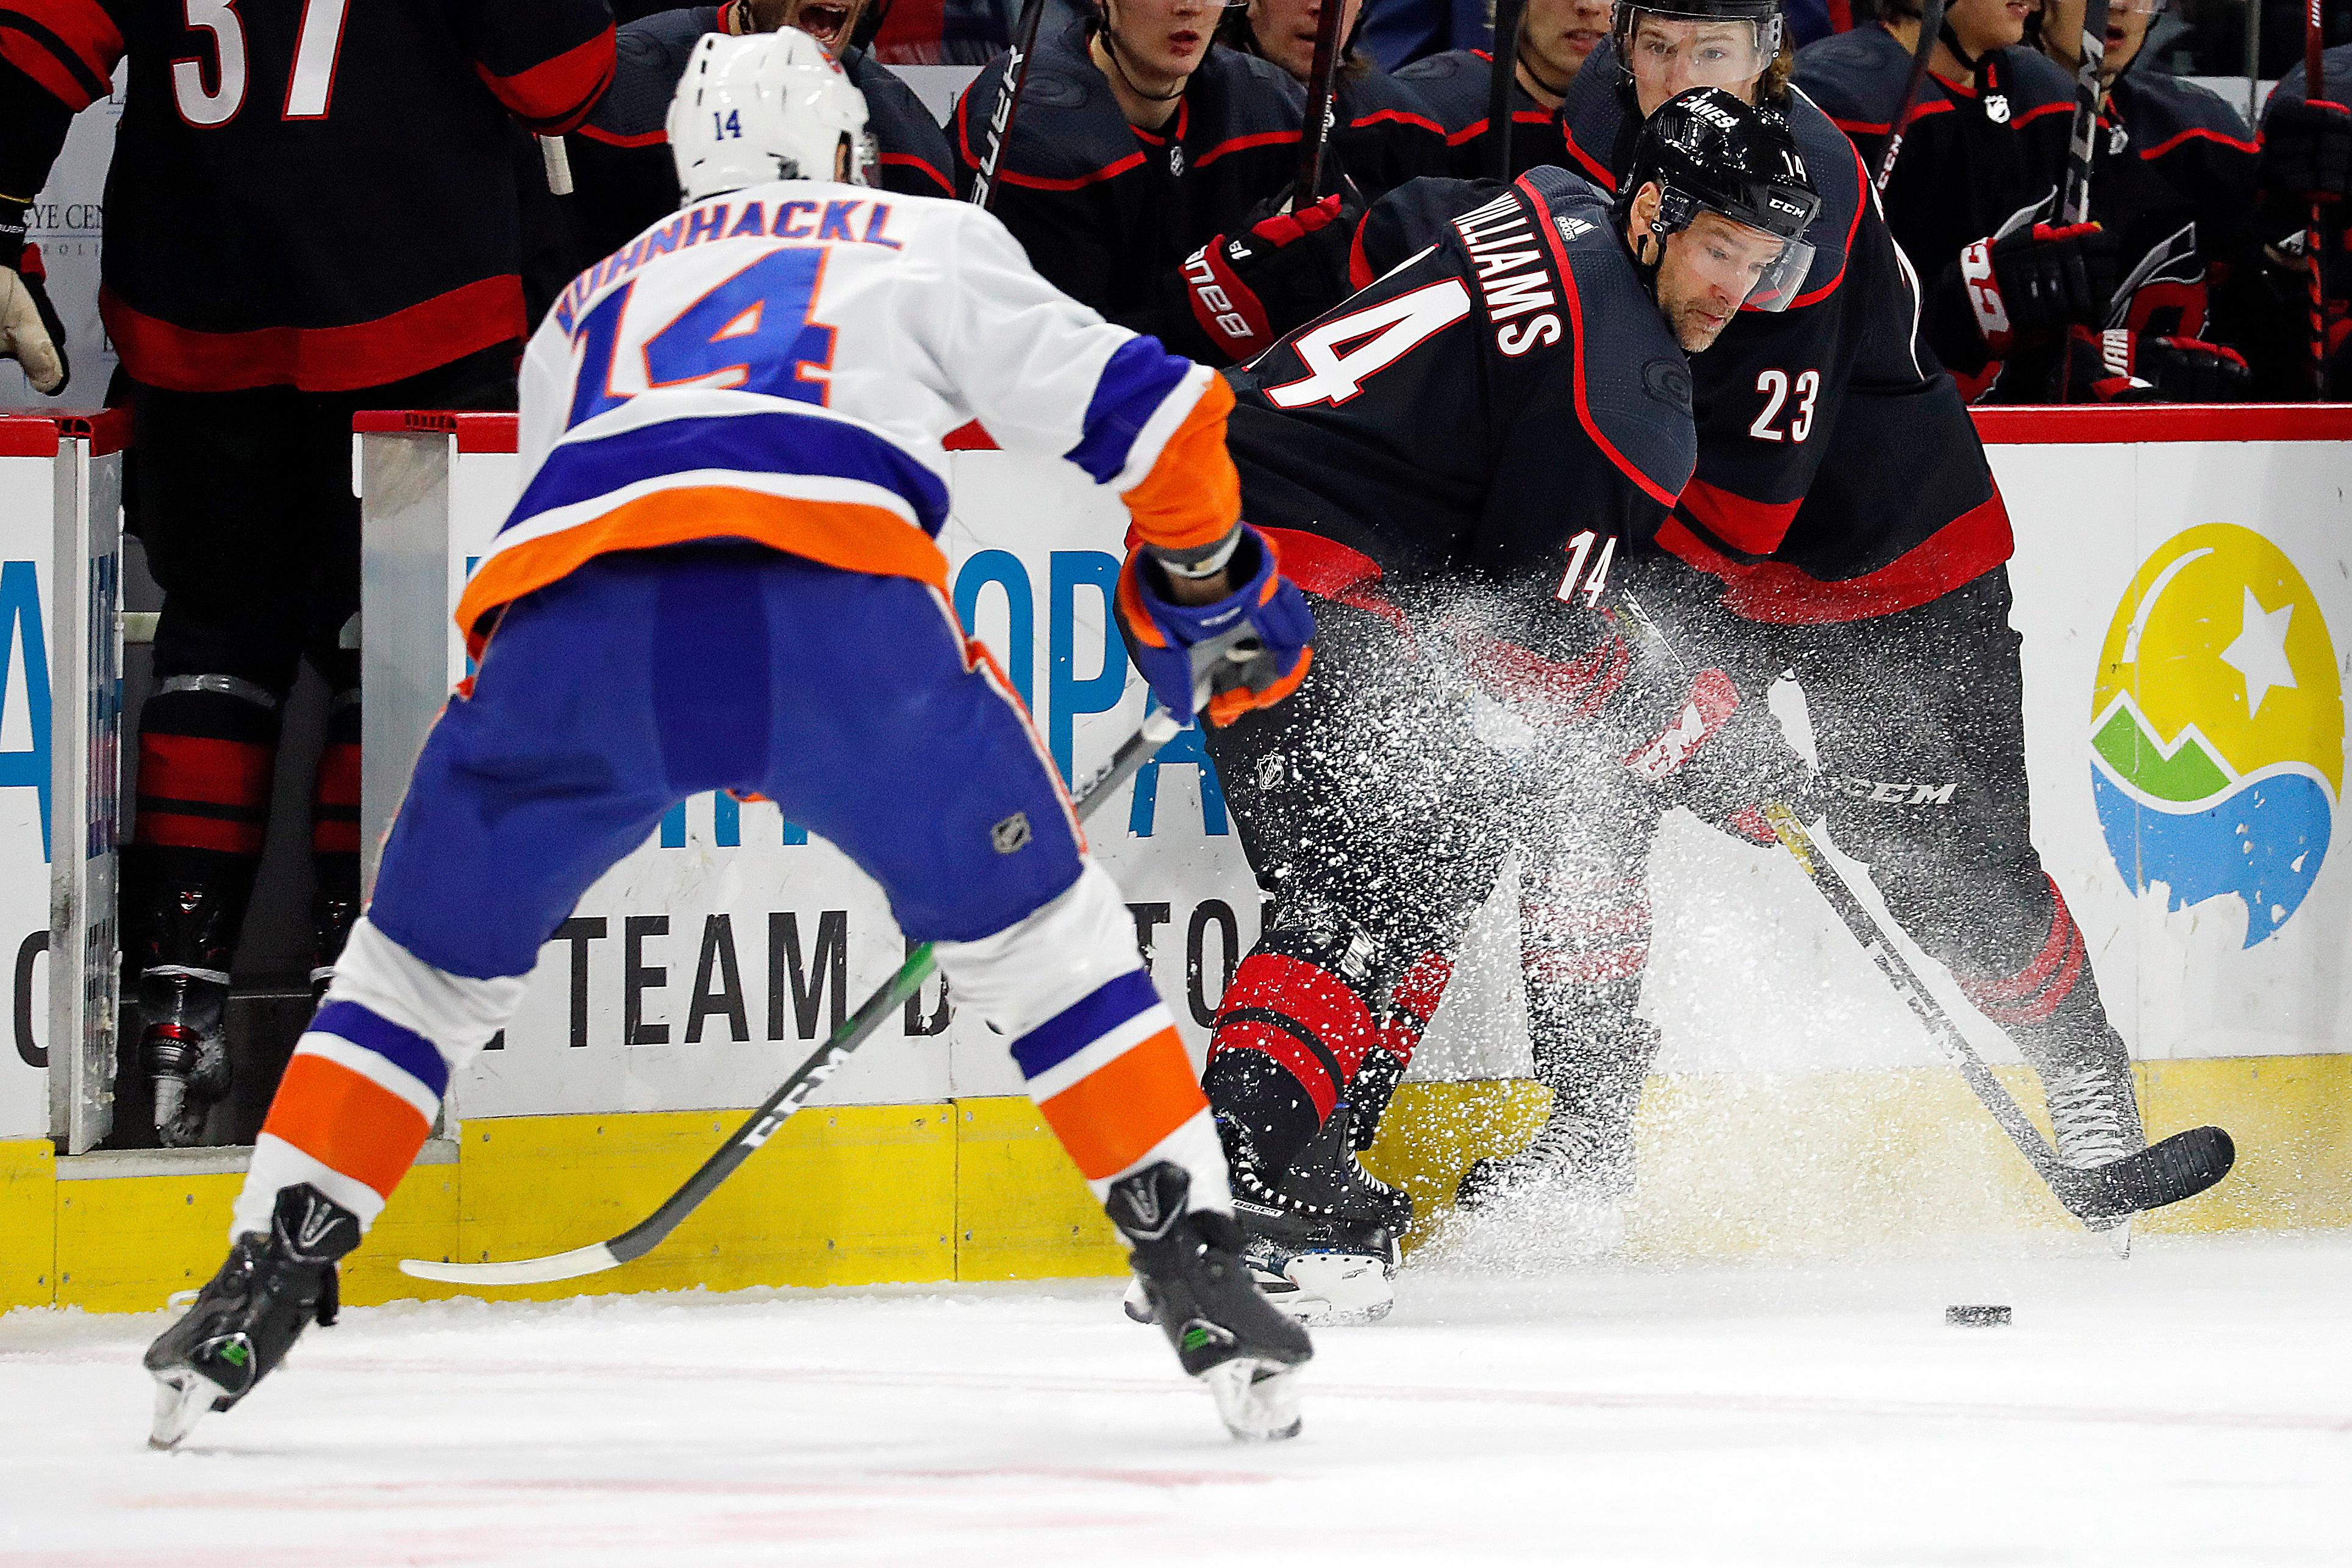 Carolina Hurricanes' Justin Williams, center, plays the puck in front of New York Islanders' Tom Kuhnhackl, left, of Germany, during the first period of an NHL hockey game in Raleigh, N.C., Sunday, Jan. 19, 2020. (AP Photo/Karl B DeBlaker)